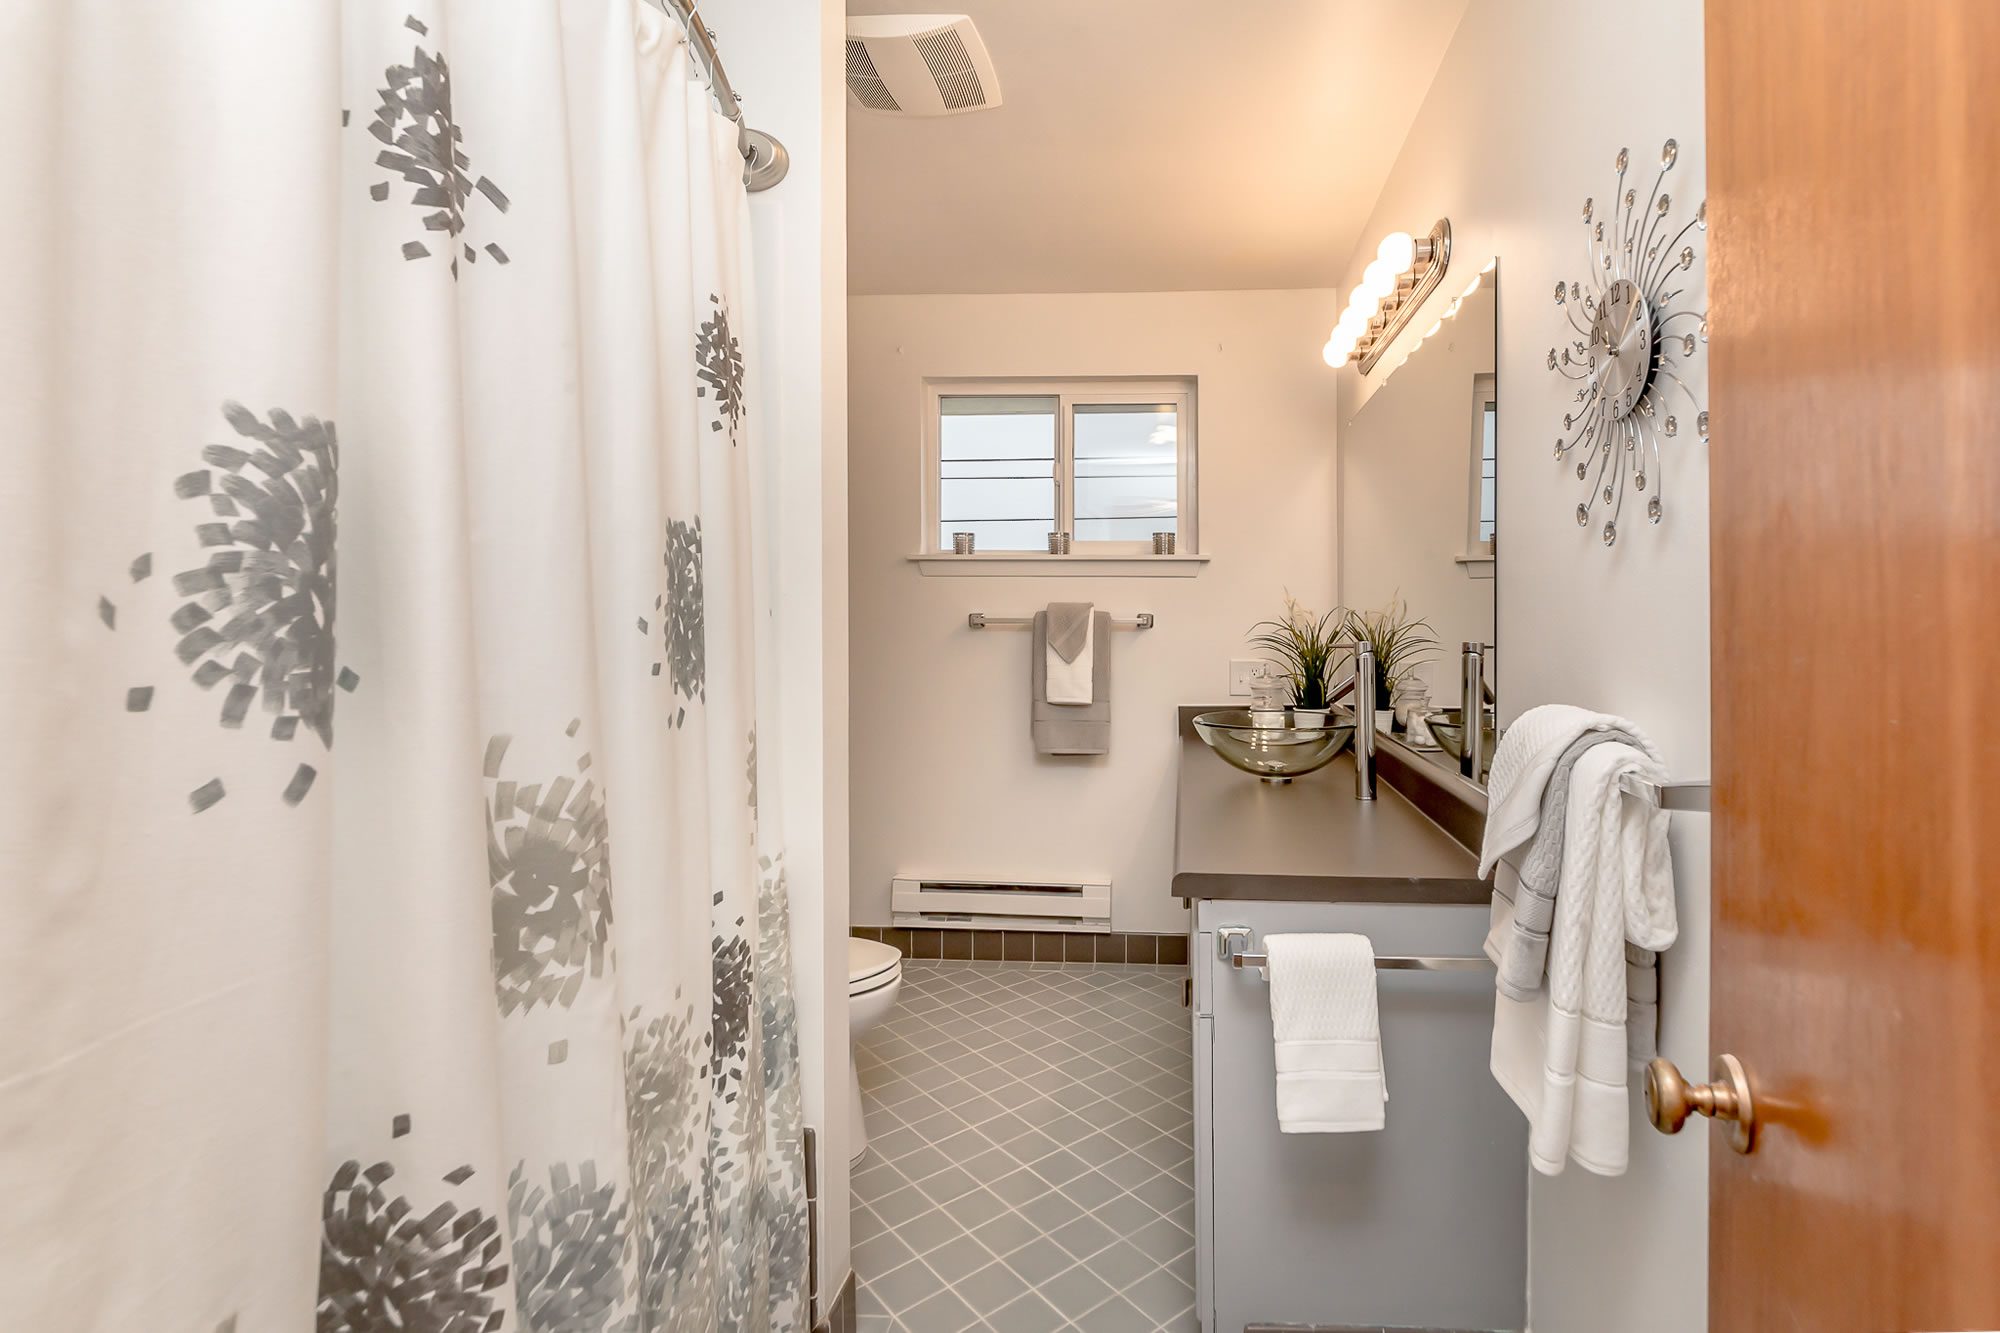 commencementbaystaging-bathroom